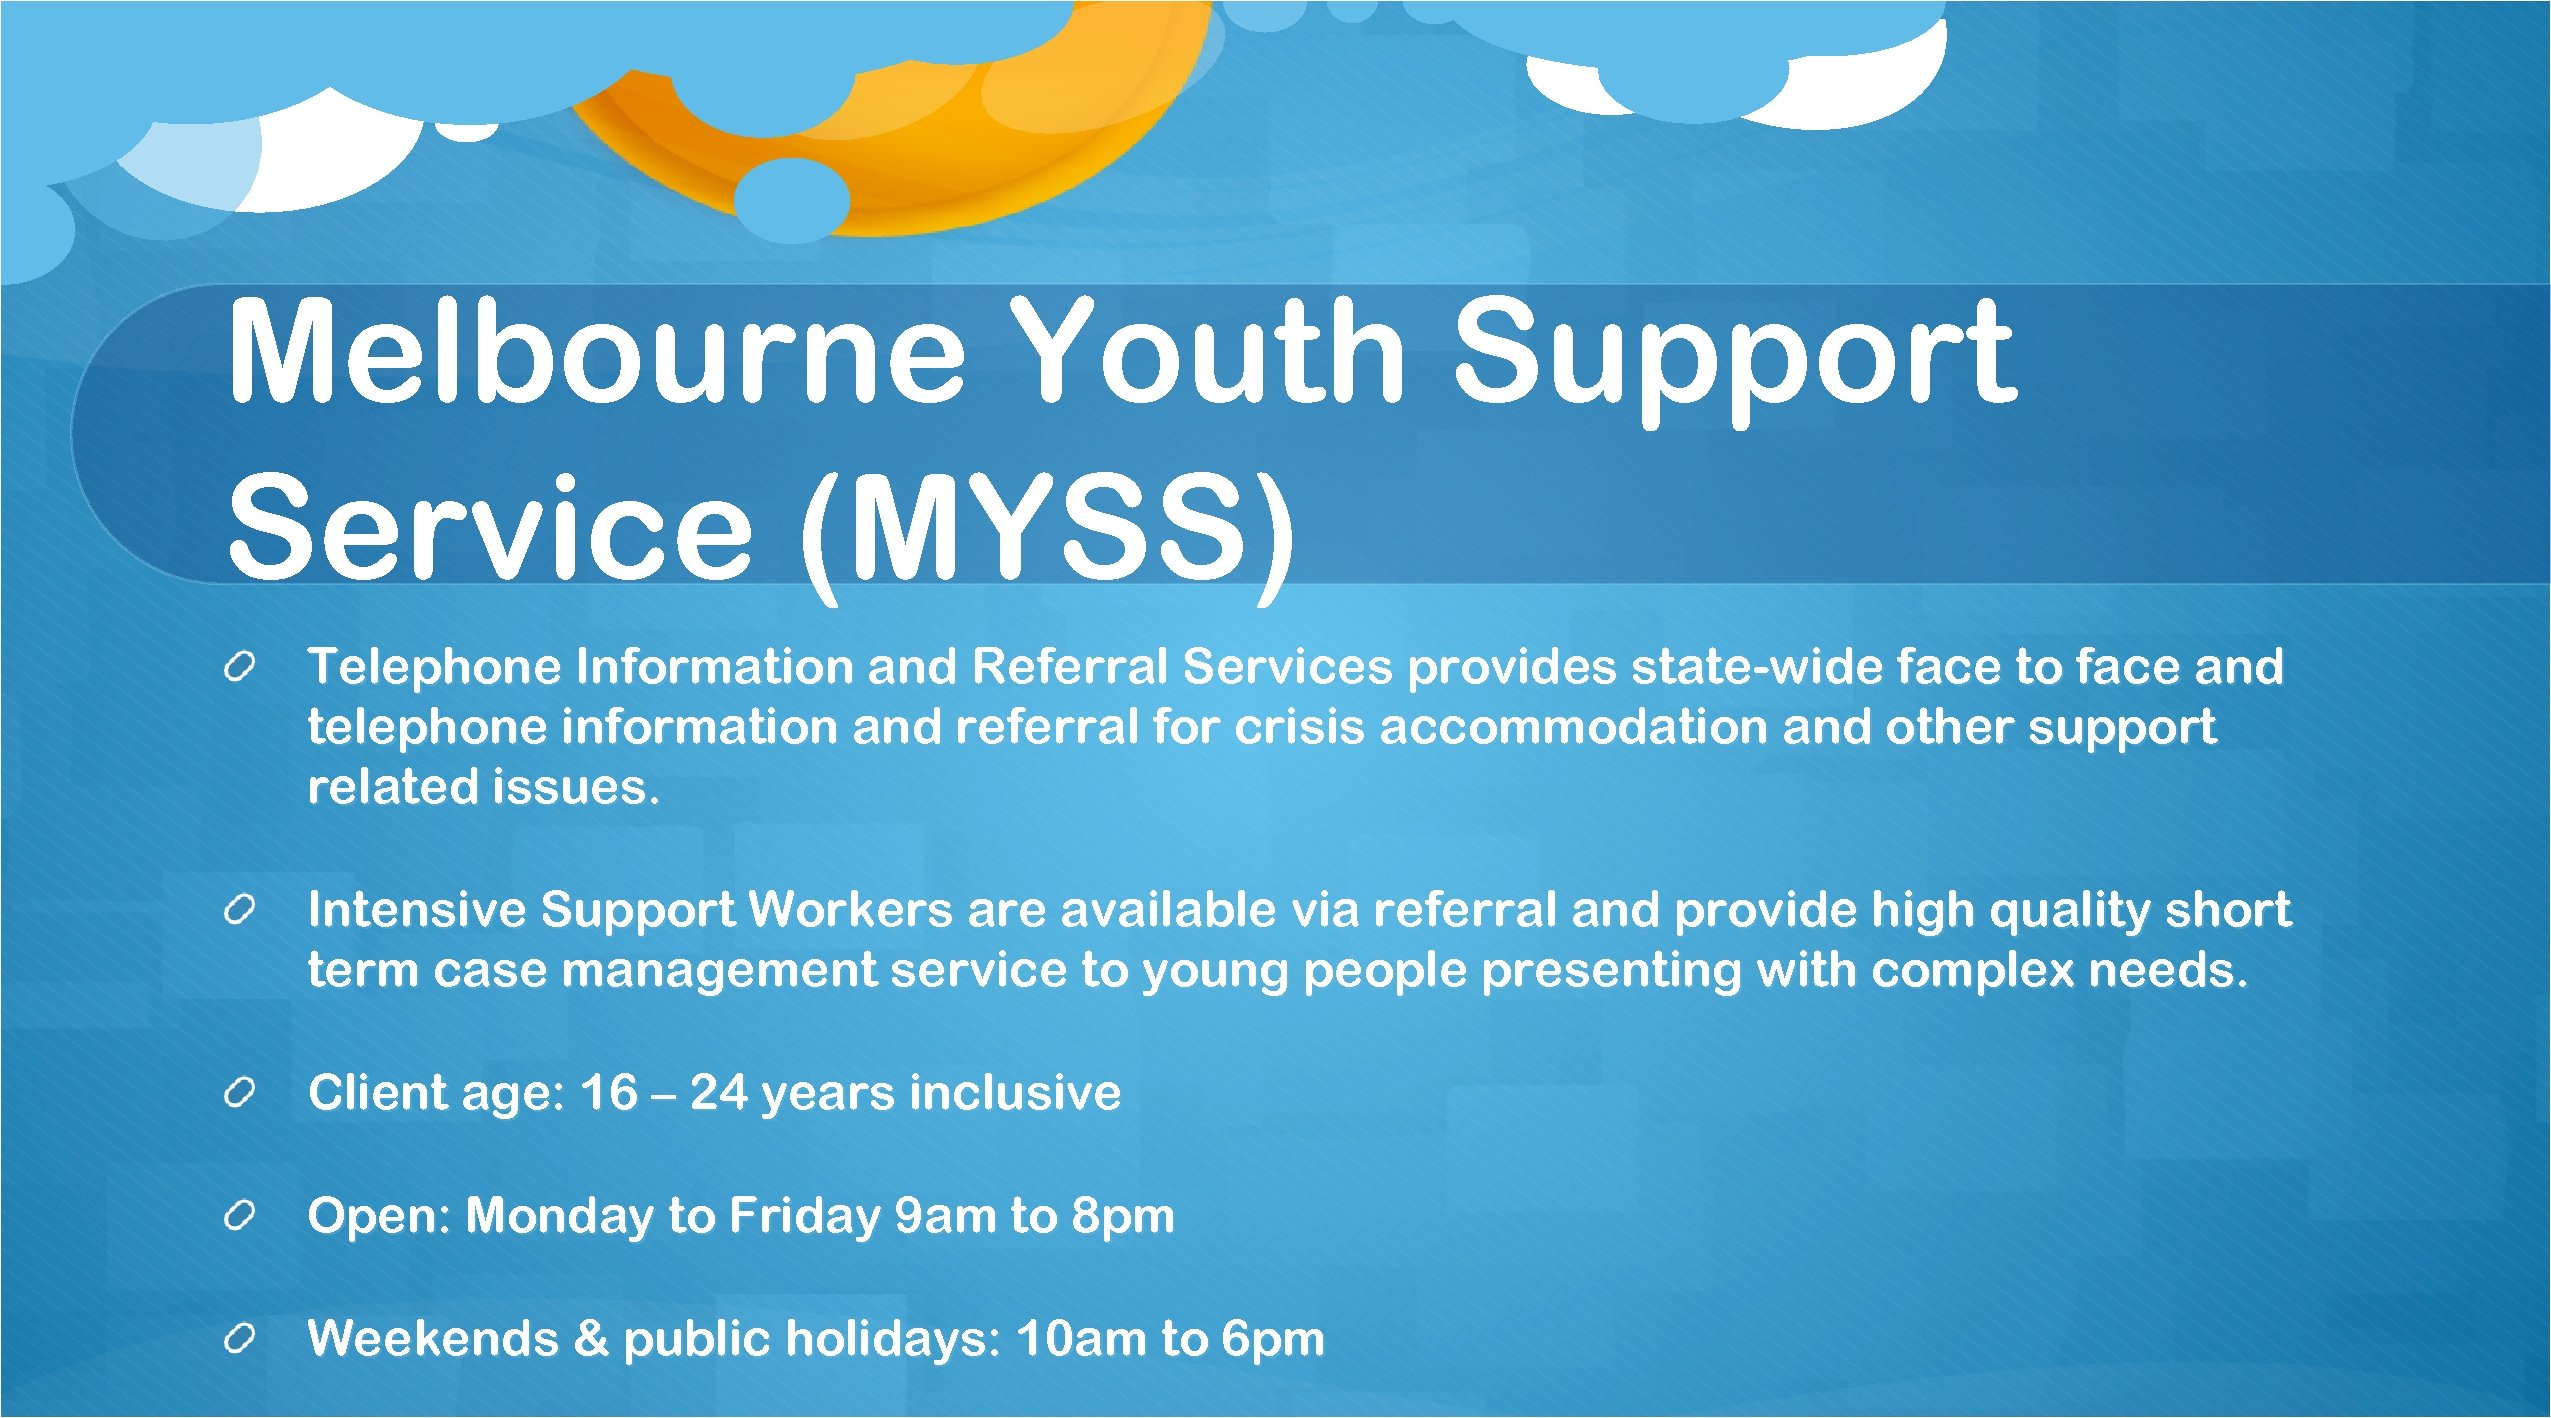 Melbourne Youth Support Service (MYSS) Telephone Information and Referral Services provides state-wide face to